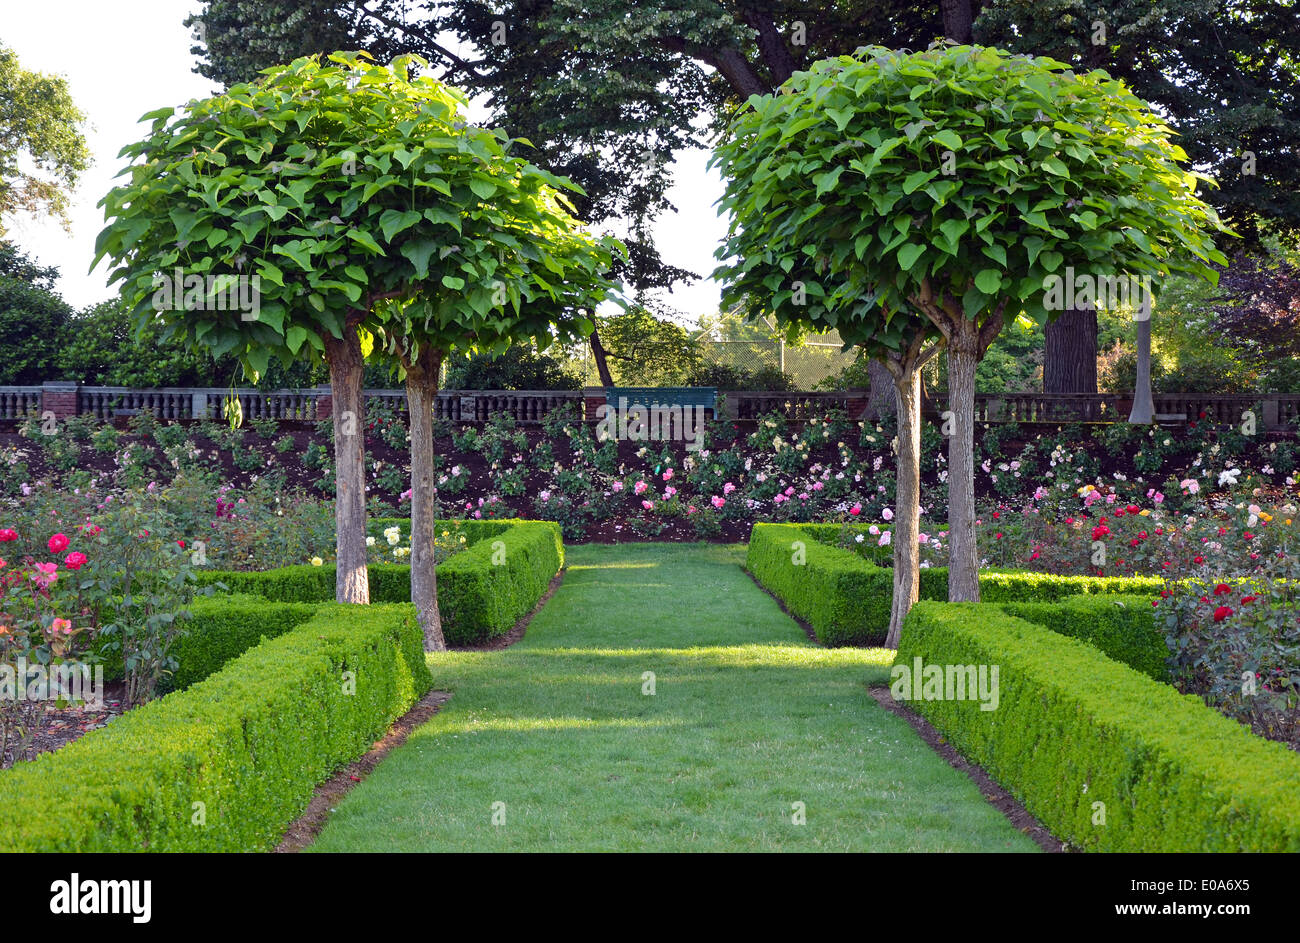 Beautiful green park with colorful rose garden - Stock Image